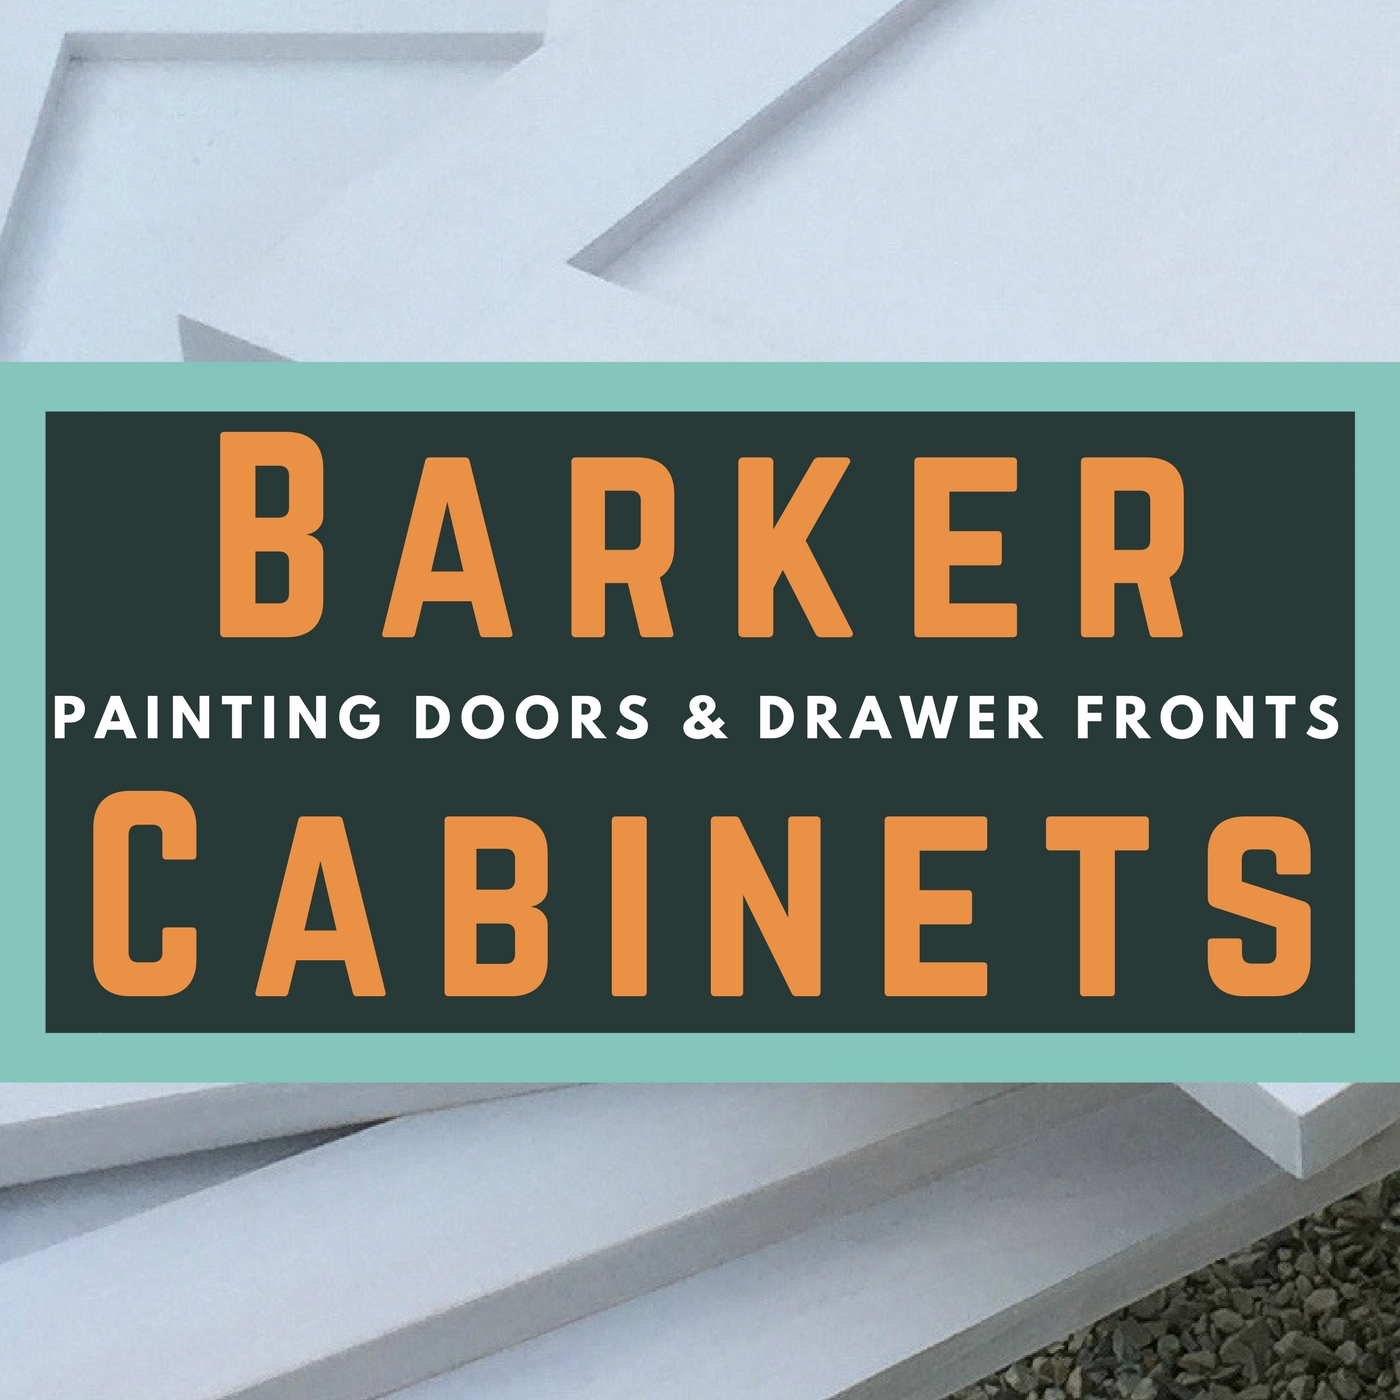 Barket Cabients -- painting doors and drawer fronts  sc 1 st  Smart Girls DIY & Painting Barker Cabinet Doors